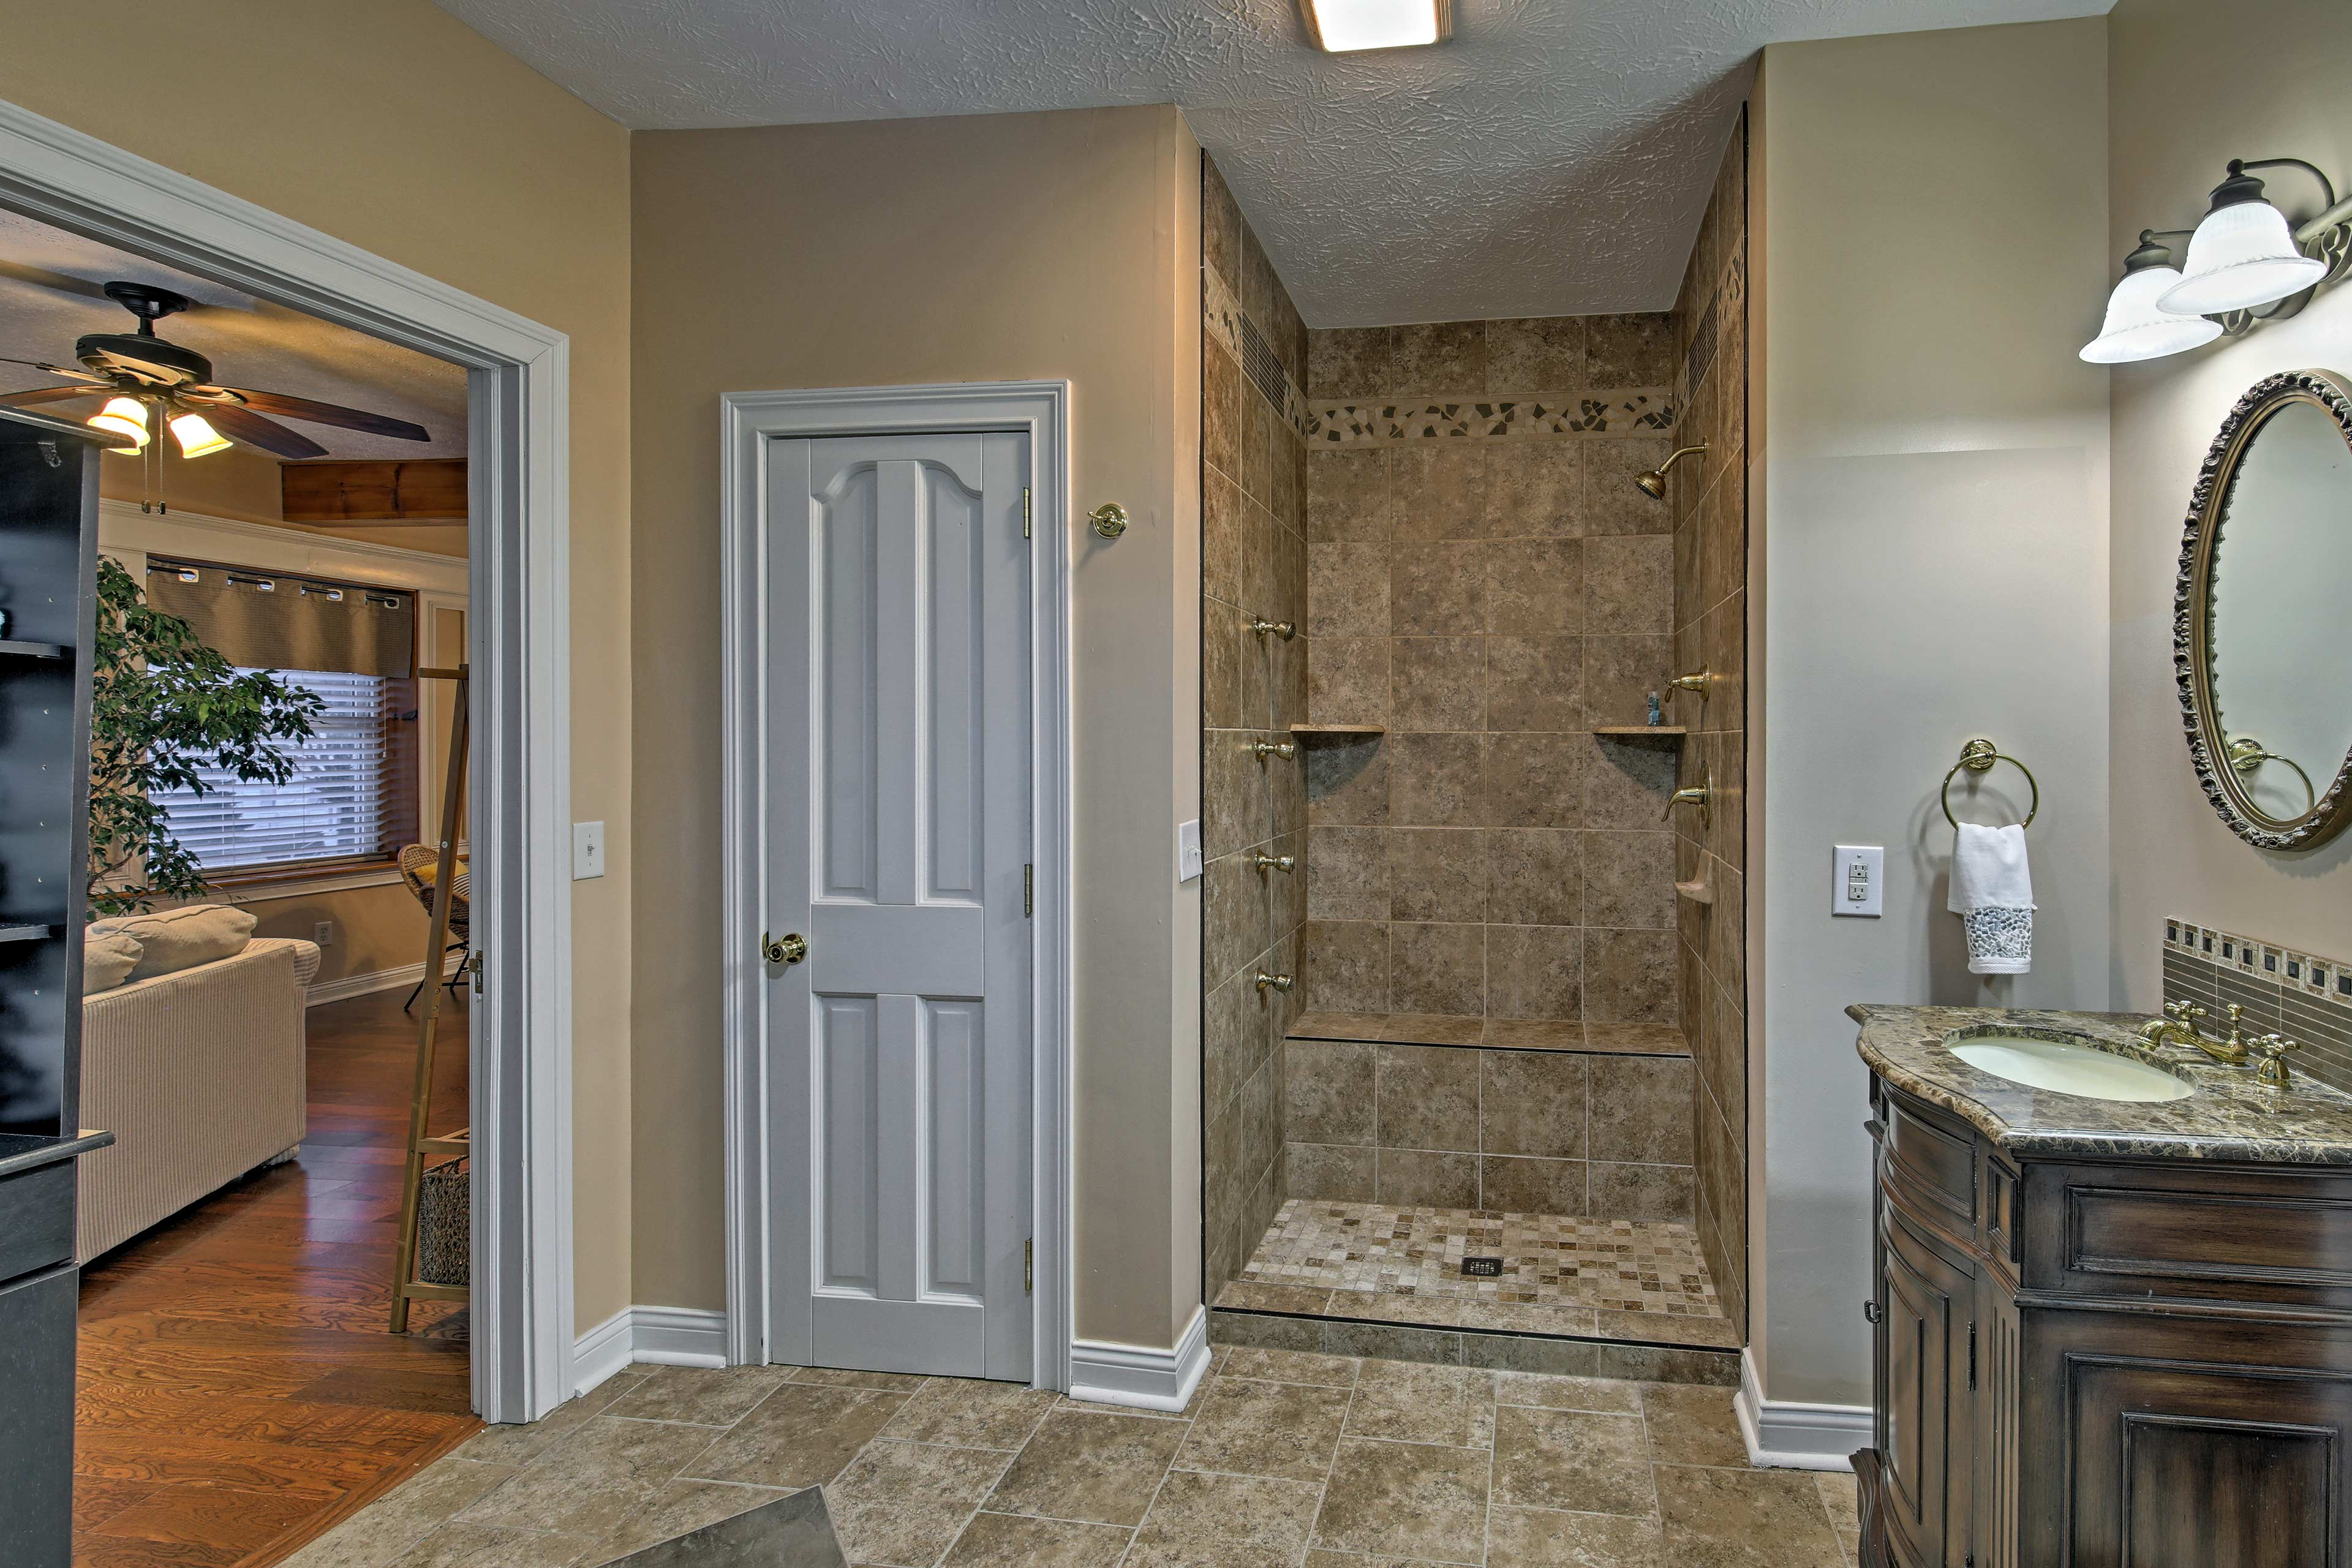 The walk-in shower in the en-suite bathroom is the epitome of luxury.